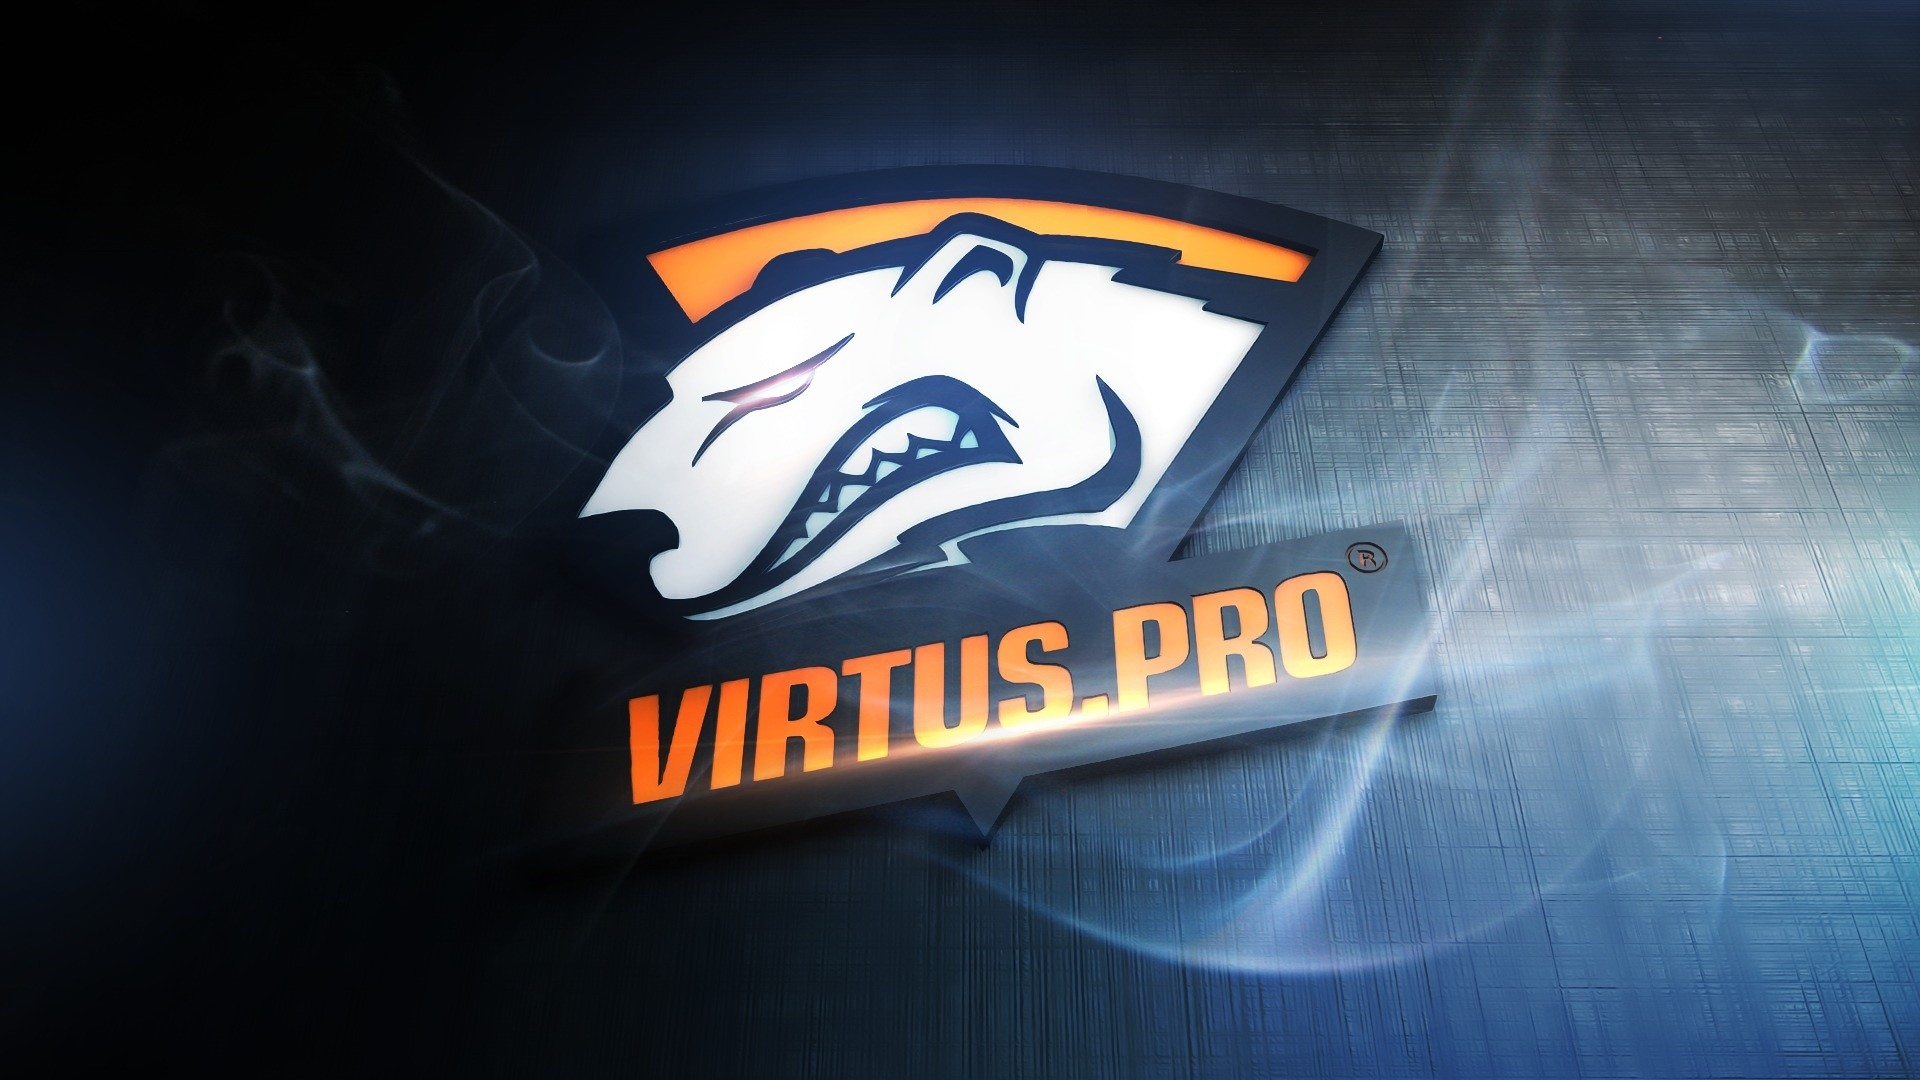 Wallpaper Virtus pro logo